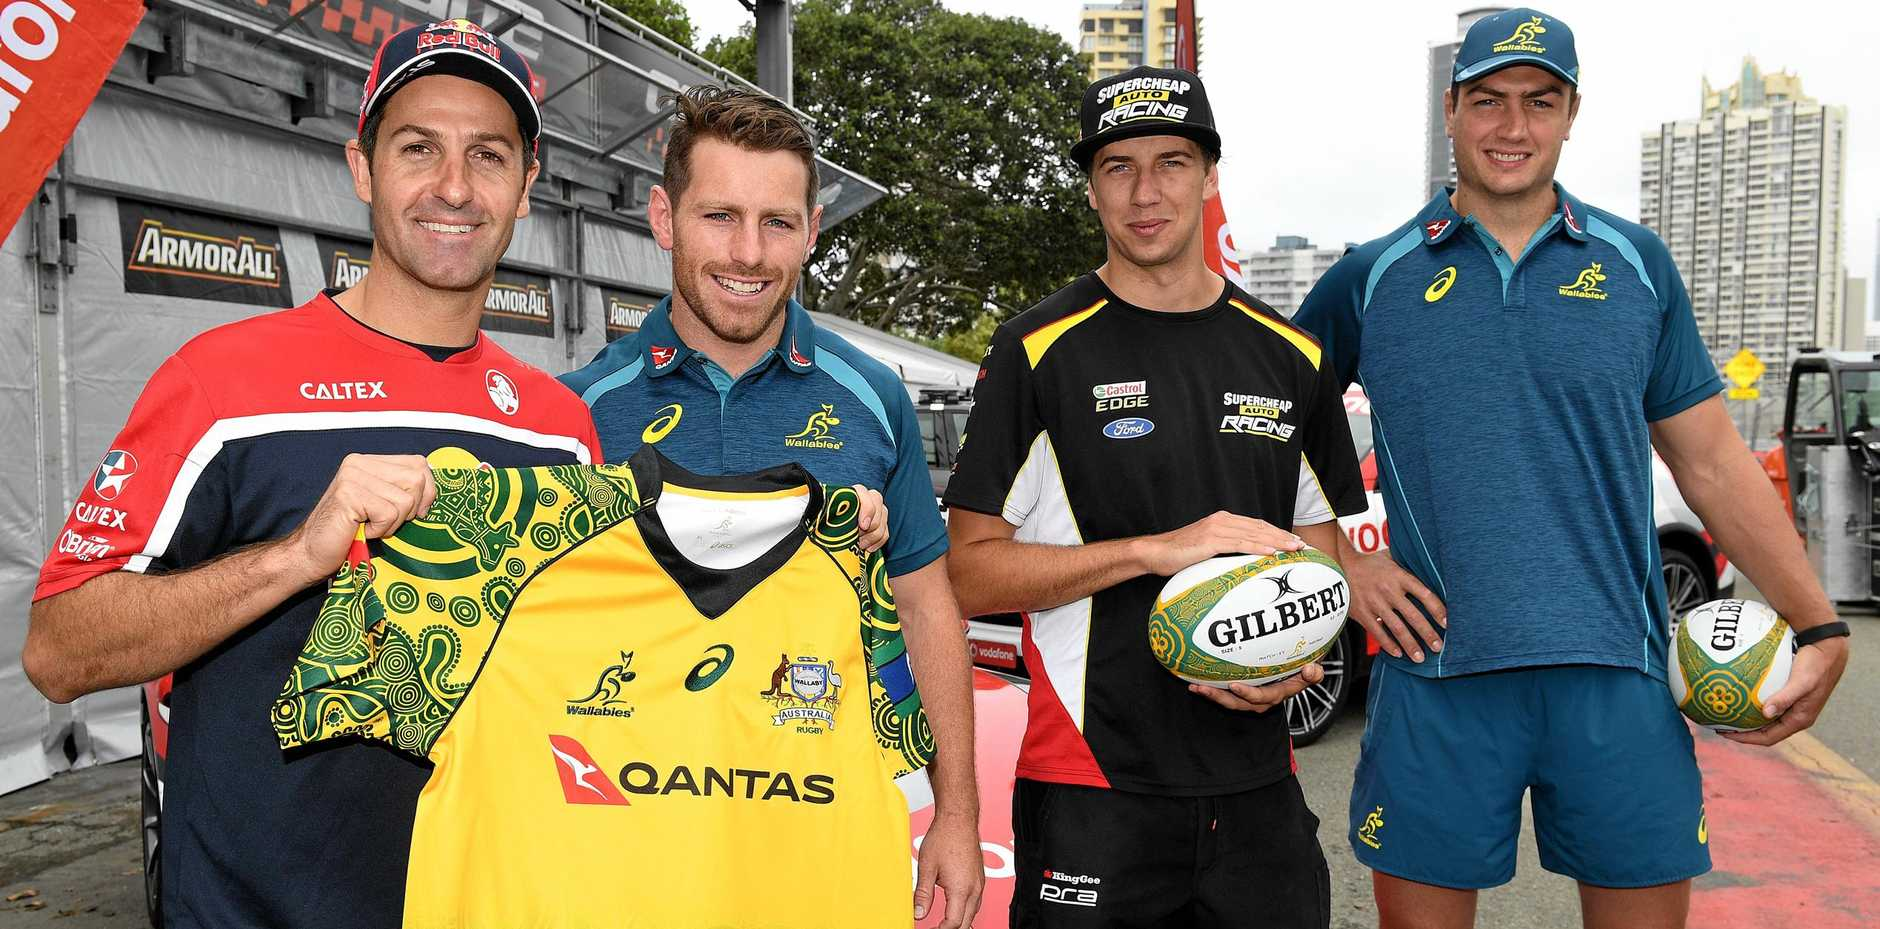 Supercars drivers Jamie Whincup (left) and Chaz Mostert (2nd right) during a media call with Australian Wallabies players Bernard Foley (2nd left) and Rob Simmons (right) in Surfers Paradise on the Gold Coast. The Gold Coast 600 Supercars race and Bledisloe Cup rugby union match will be held this weekend.